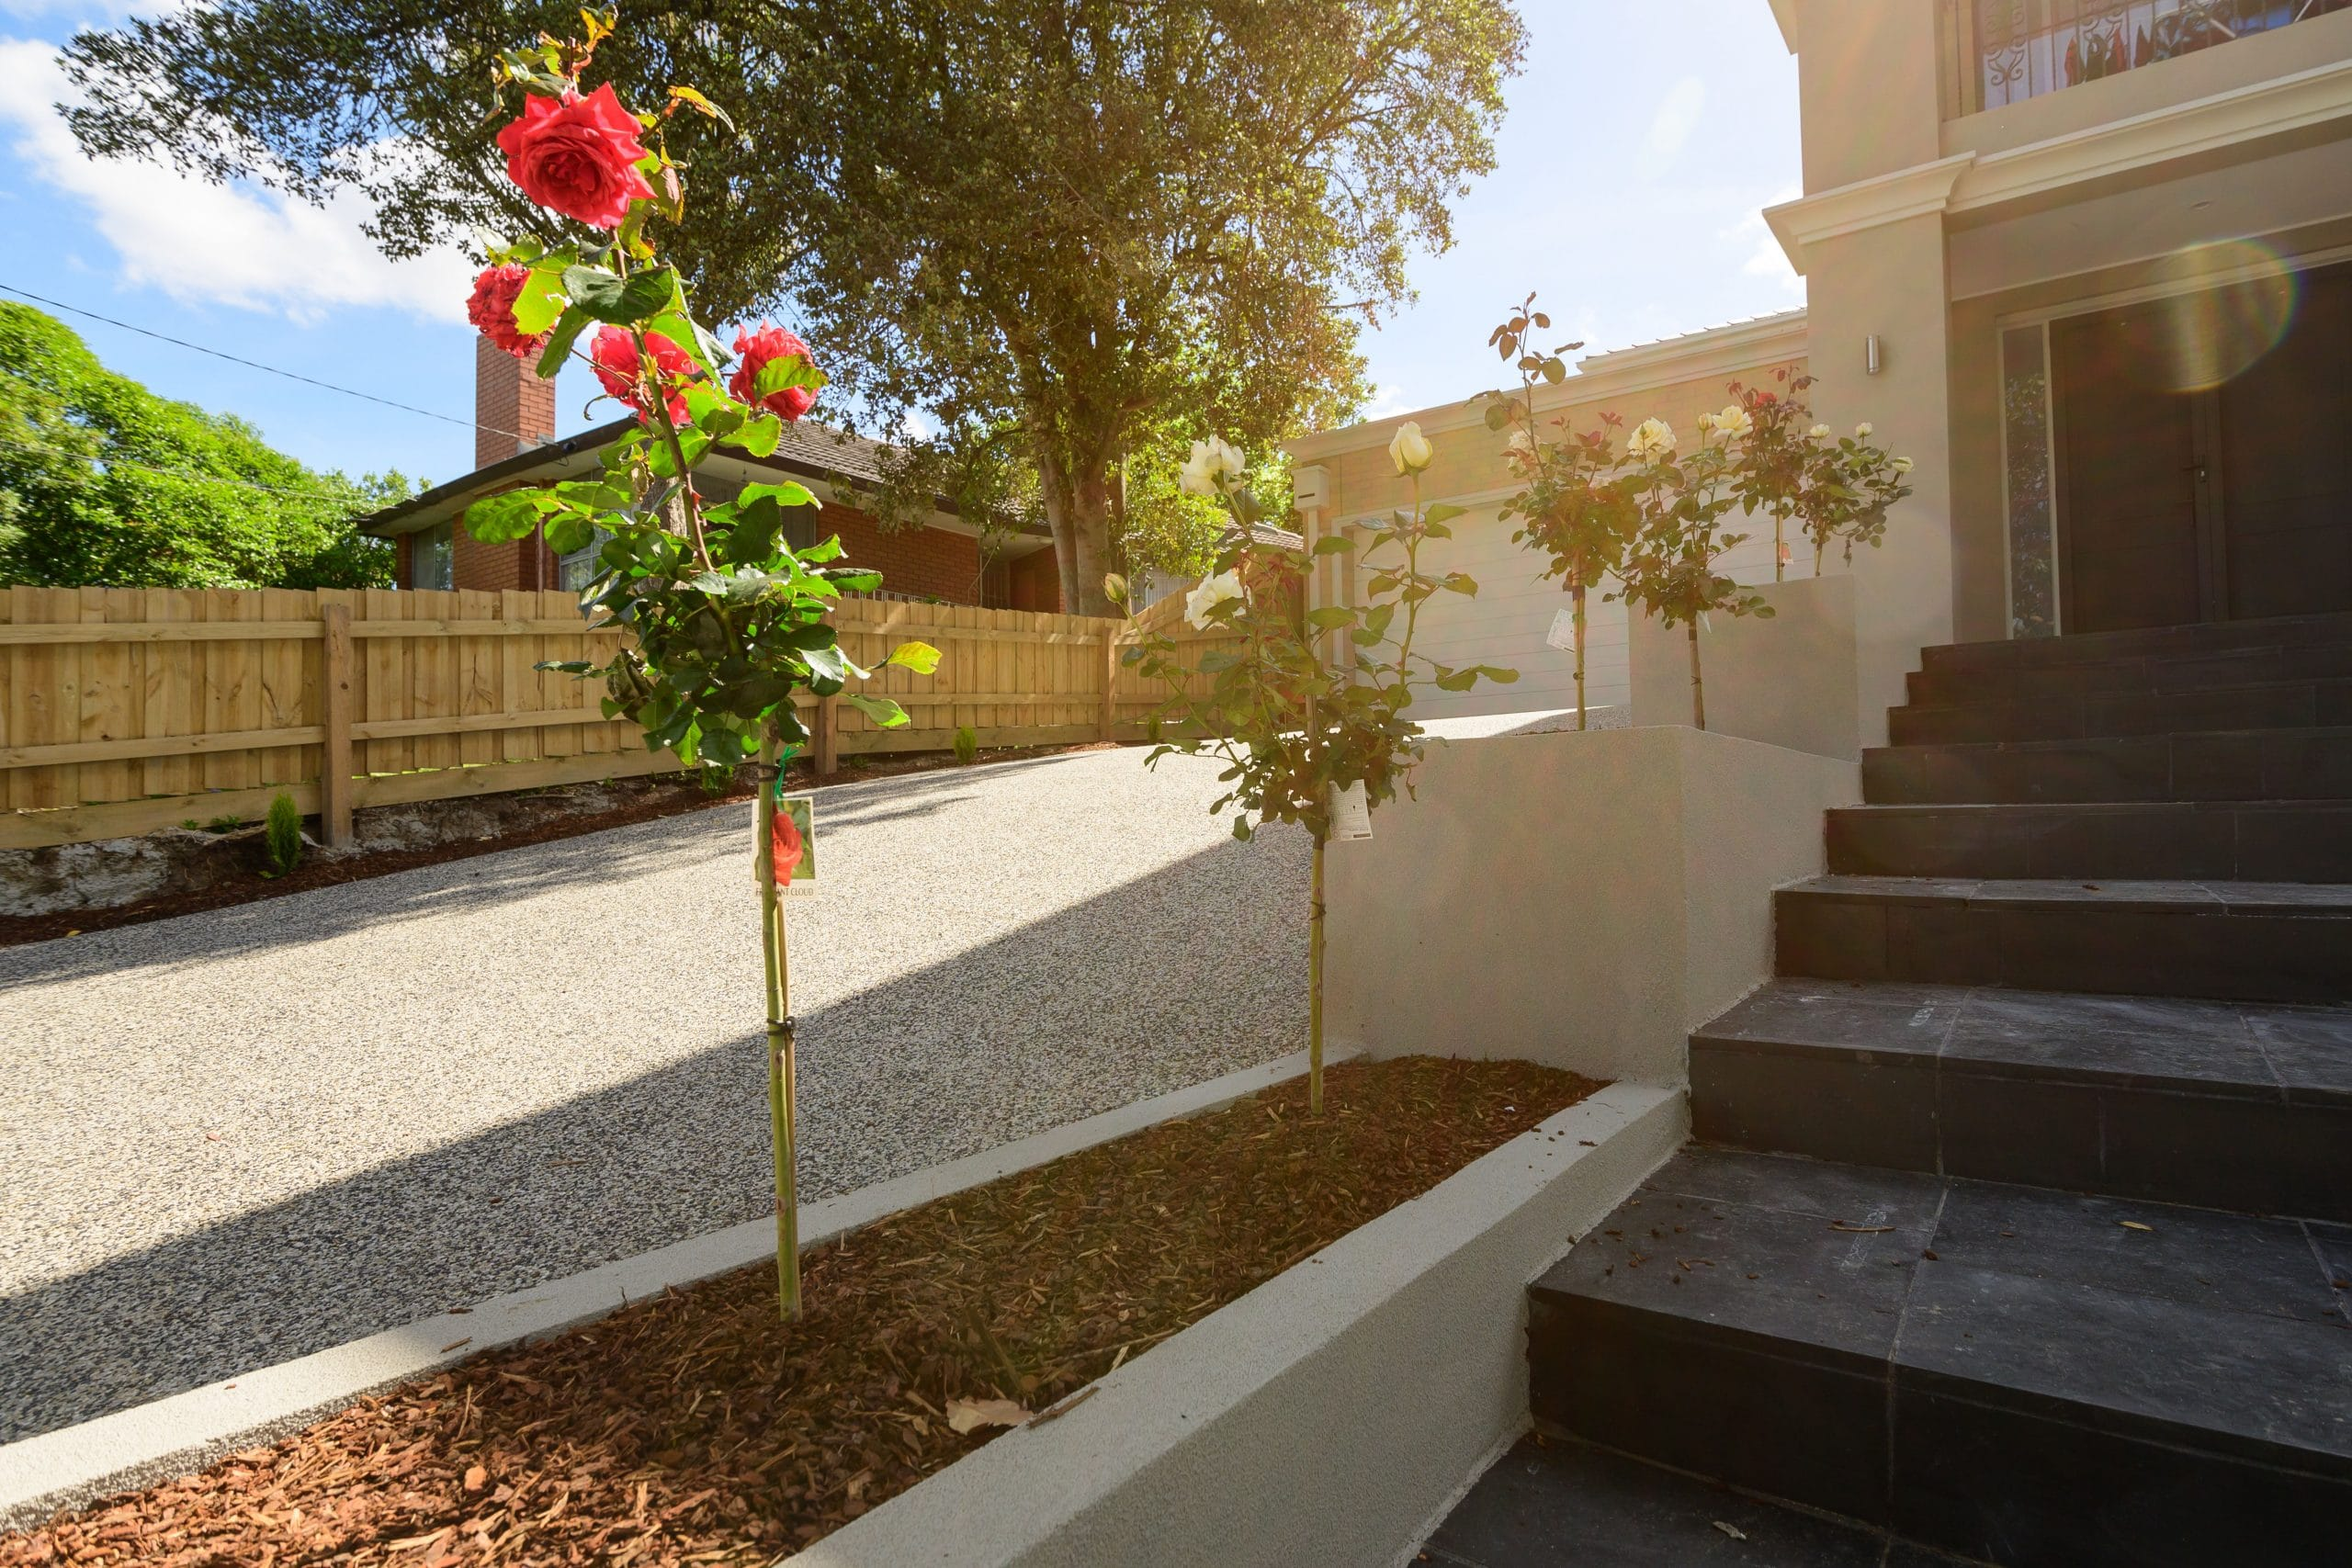 L260 - Doncaster East - Driveway with rose garden